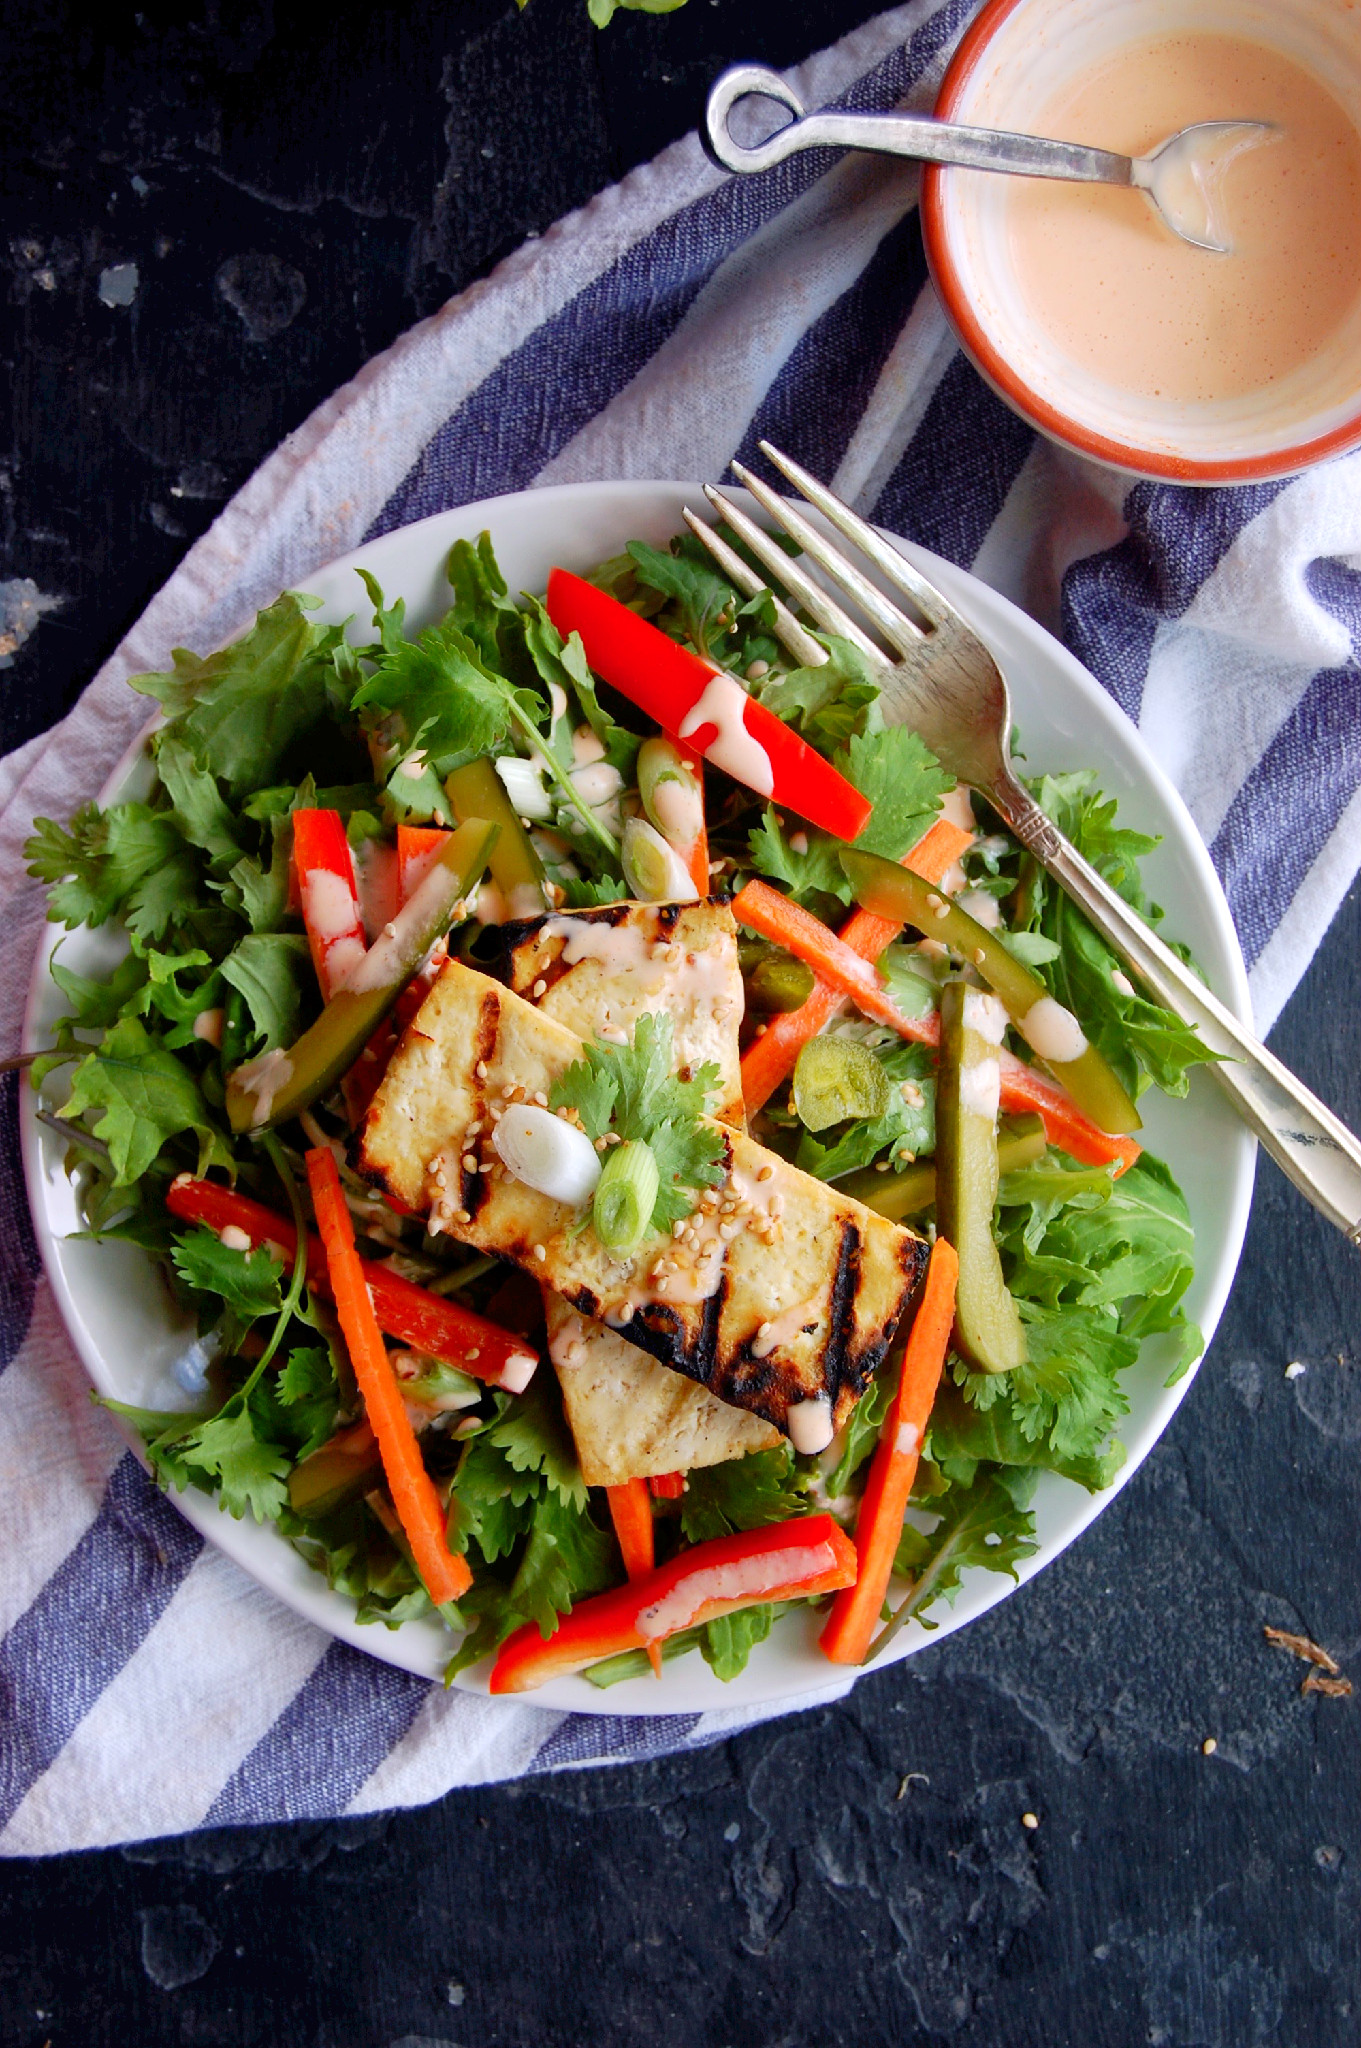 Tofu Banh Mi Salad with Sriracha Greek Yogurt Dressing and Quick Pickled Vegetables #glutenfree | uprootkitchen.com